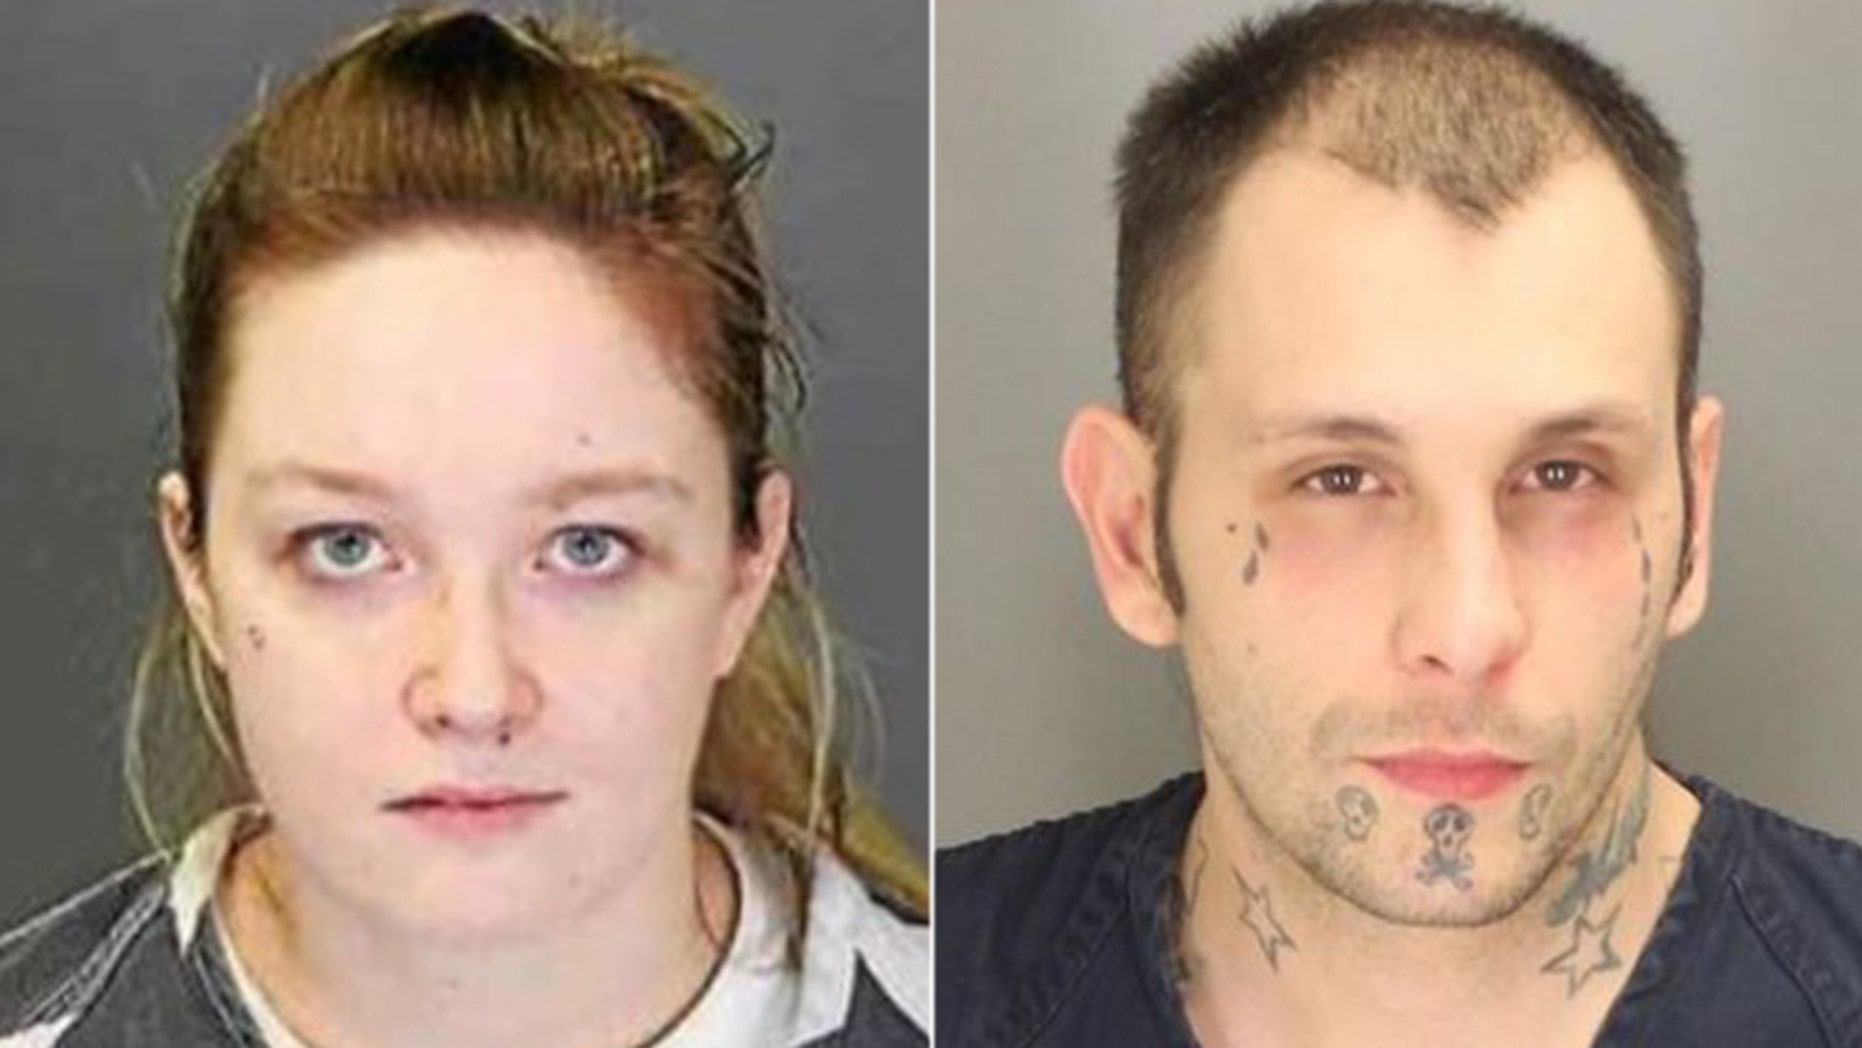 Anngela Boyle, 27, and husband Colin Boyle, were sentenced to 30 years and 60 years in prison, respectively, in a child porn scheme.